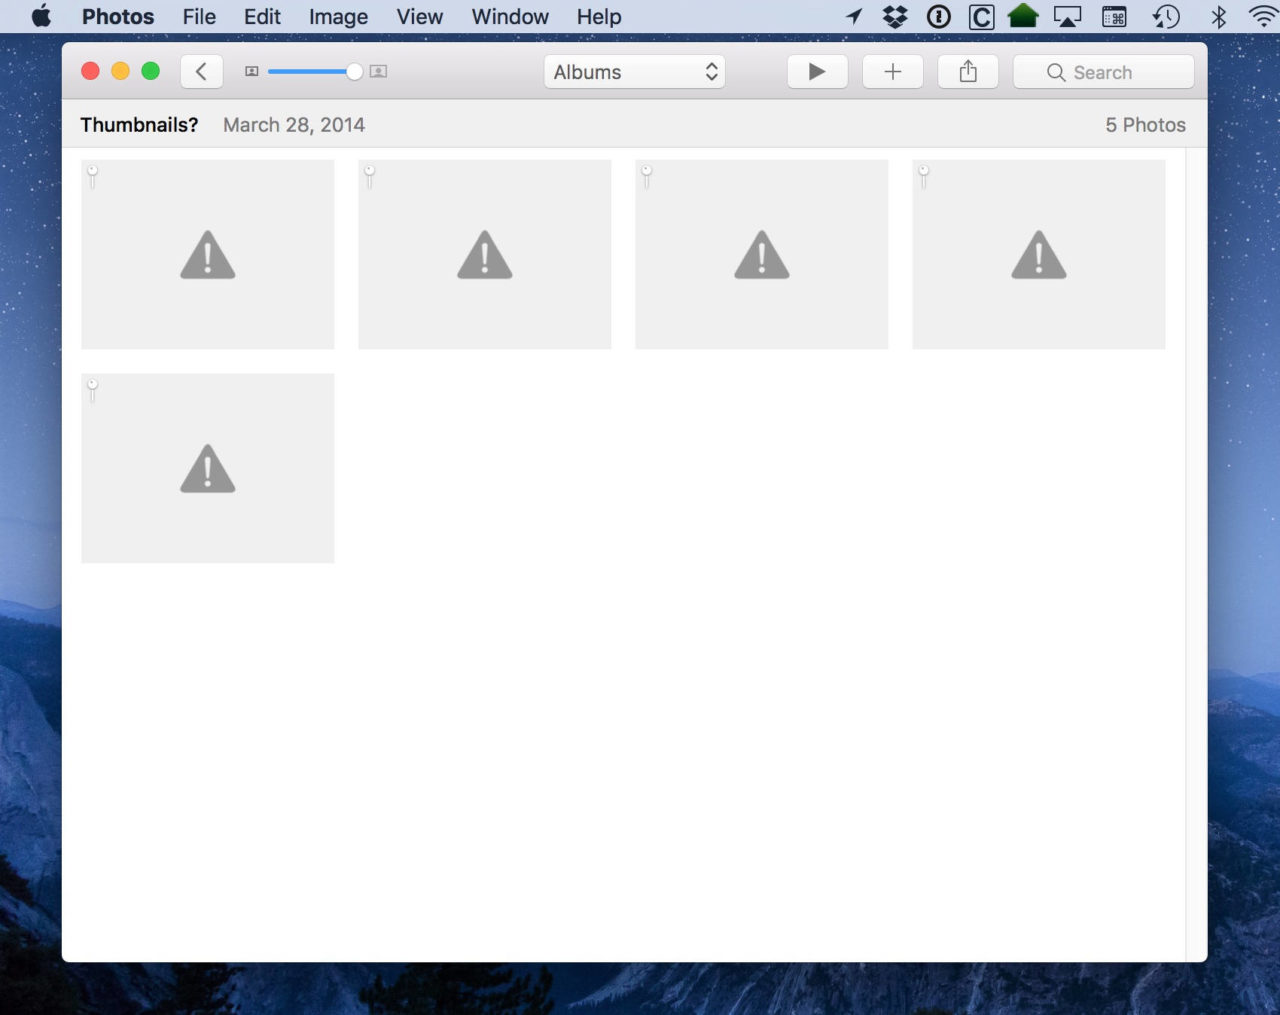 How to Repair Your Photos Library on the Mac